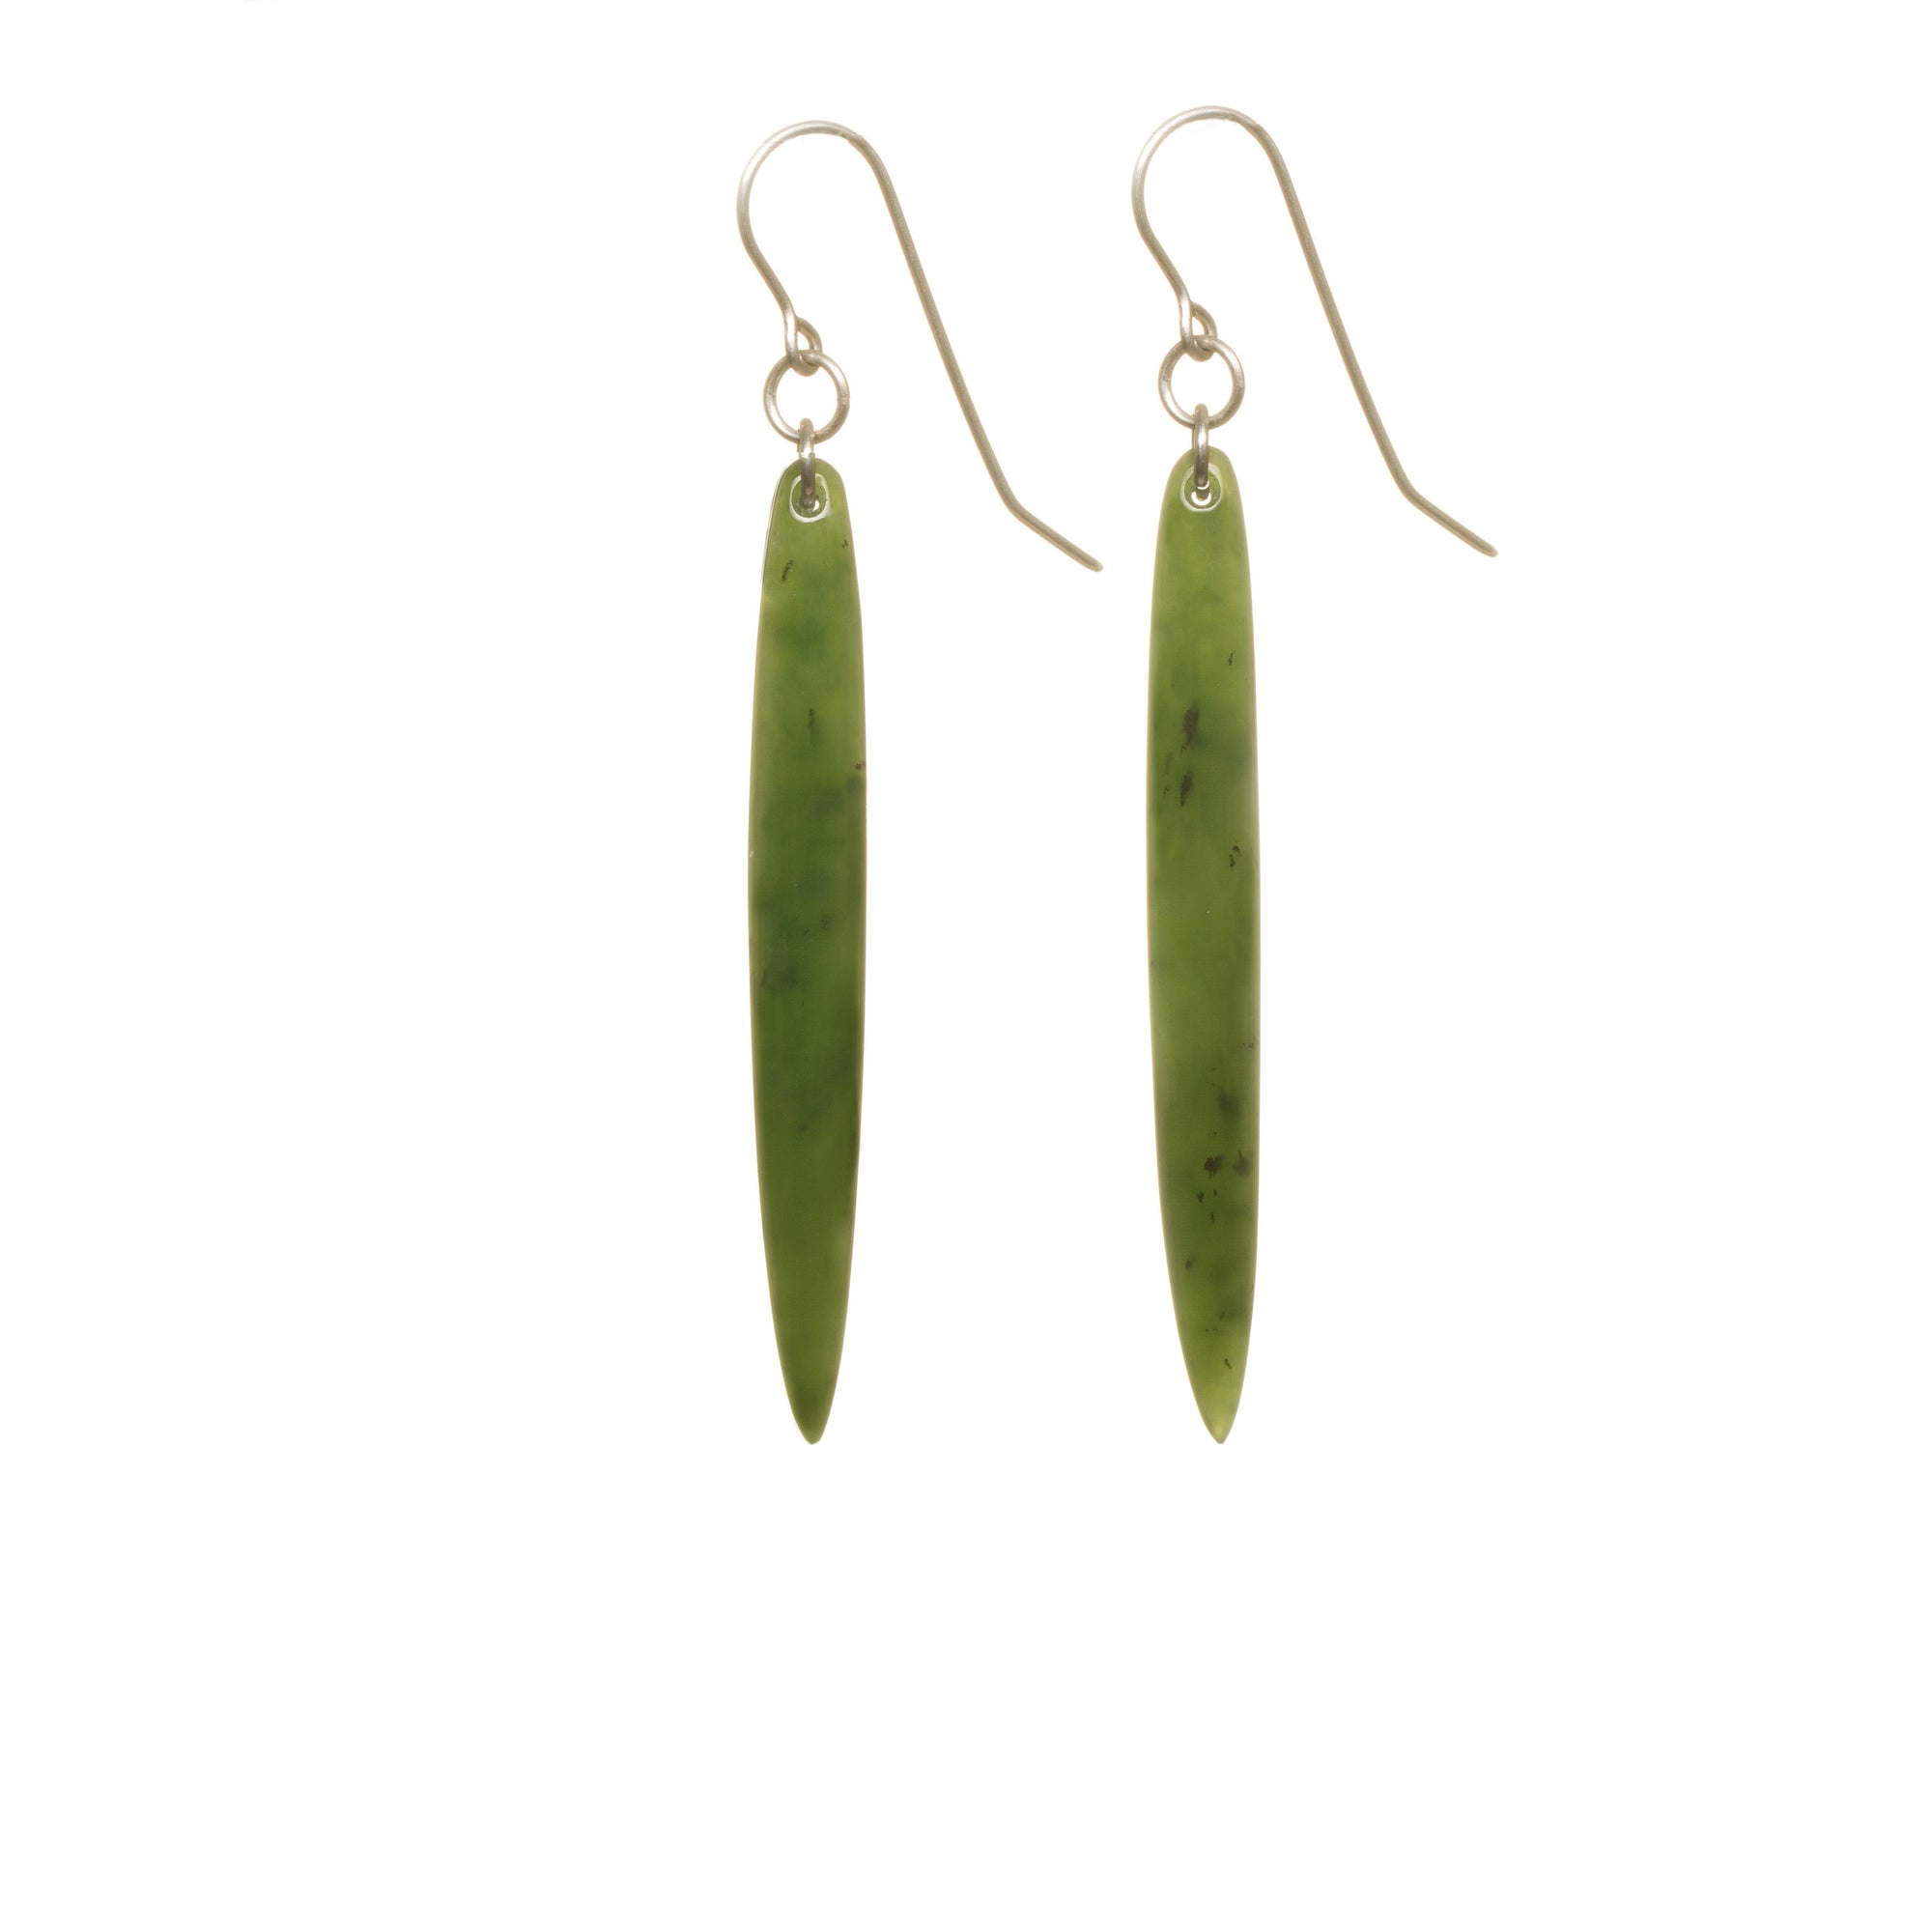 New Zealand Pounamu Long Pointed Drop Earrings